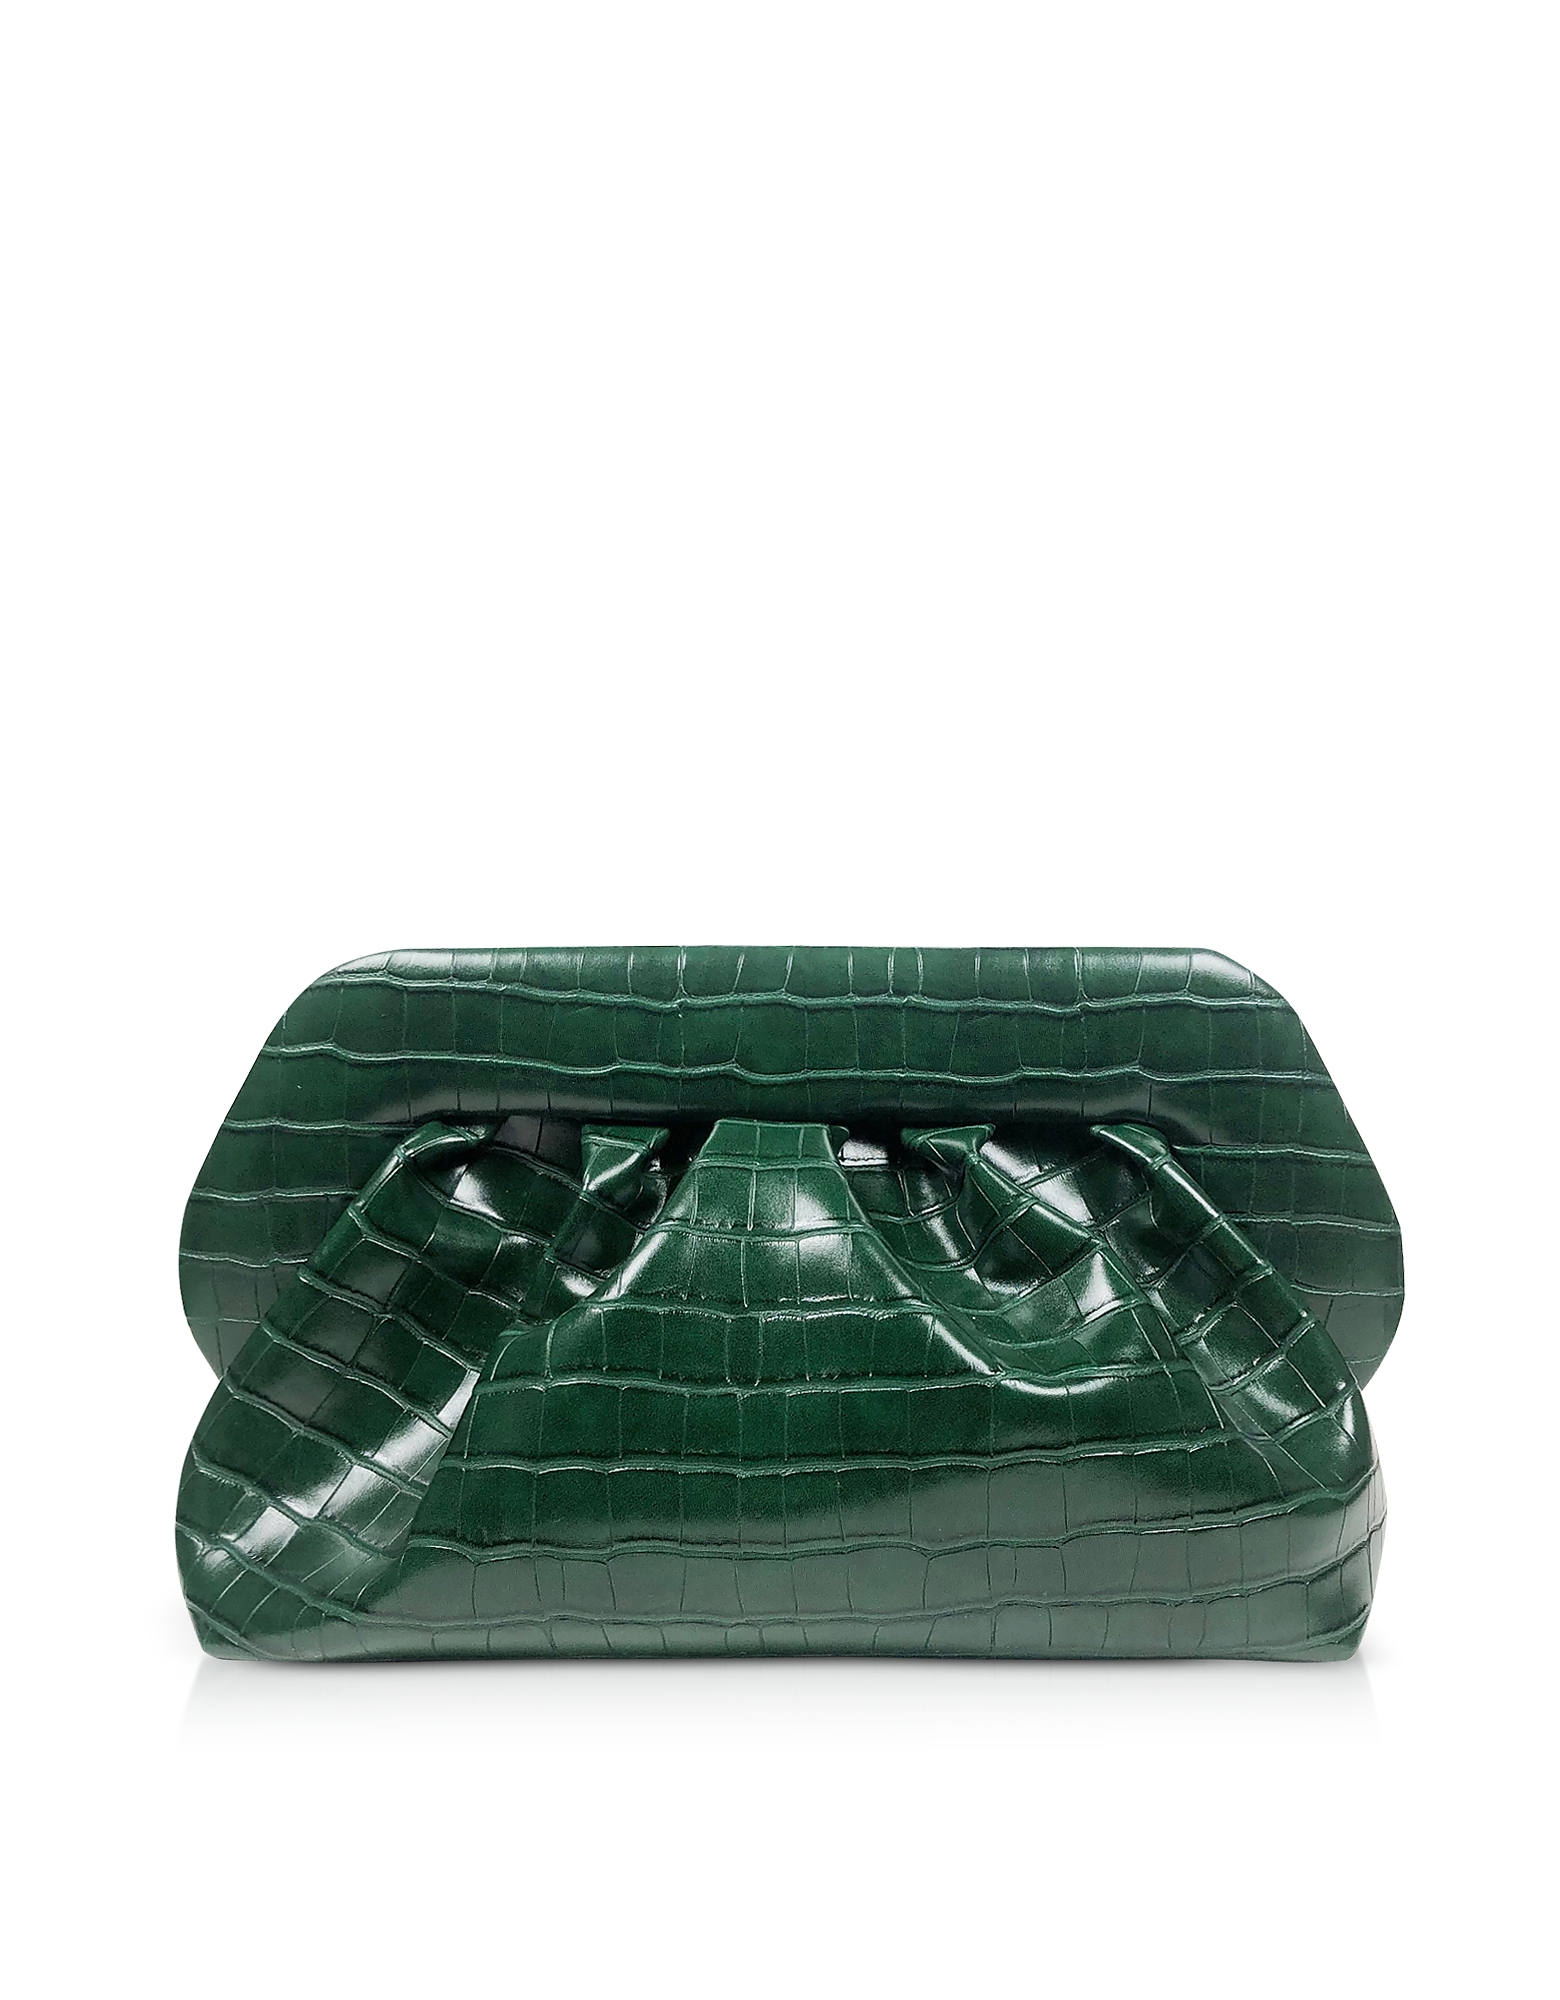 THEMOIRÉ Designer Handbags, Green Croco Embossed Eco-Leather Pouch Bag